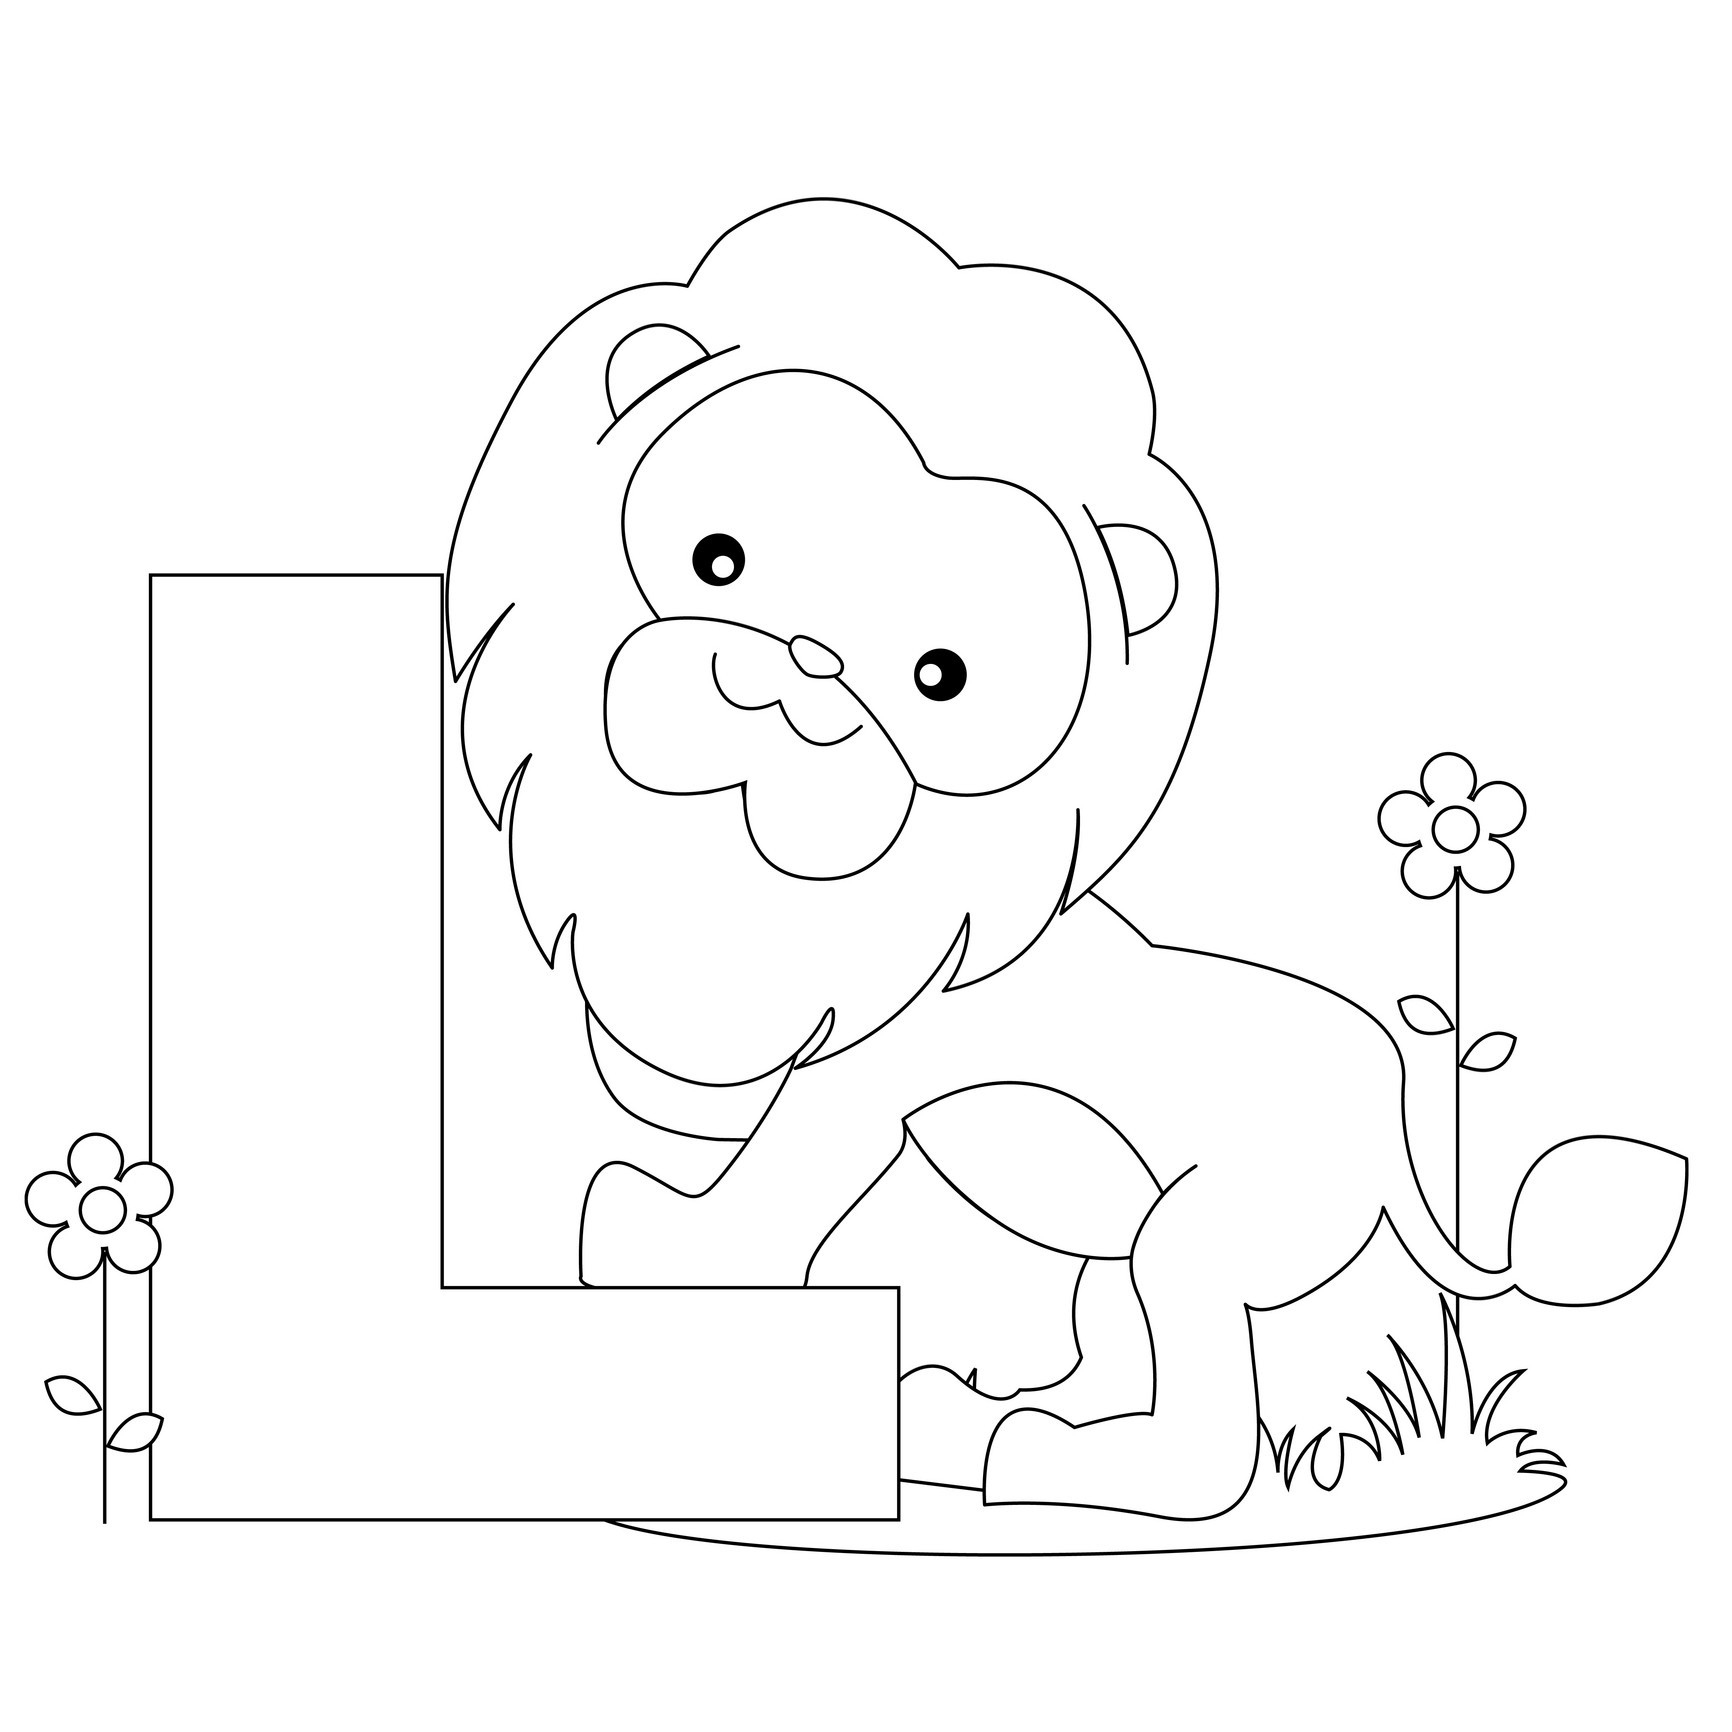 colouring pictures of alphabets alphabet coloring page stock vector illustration of child colouring alphabets of pictures